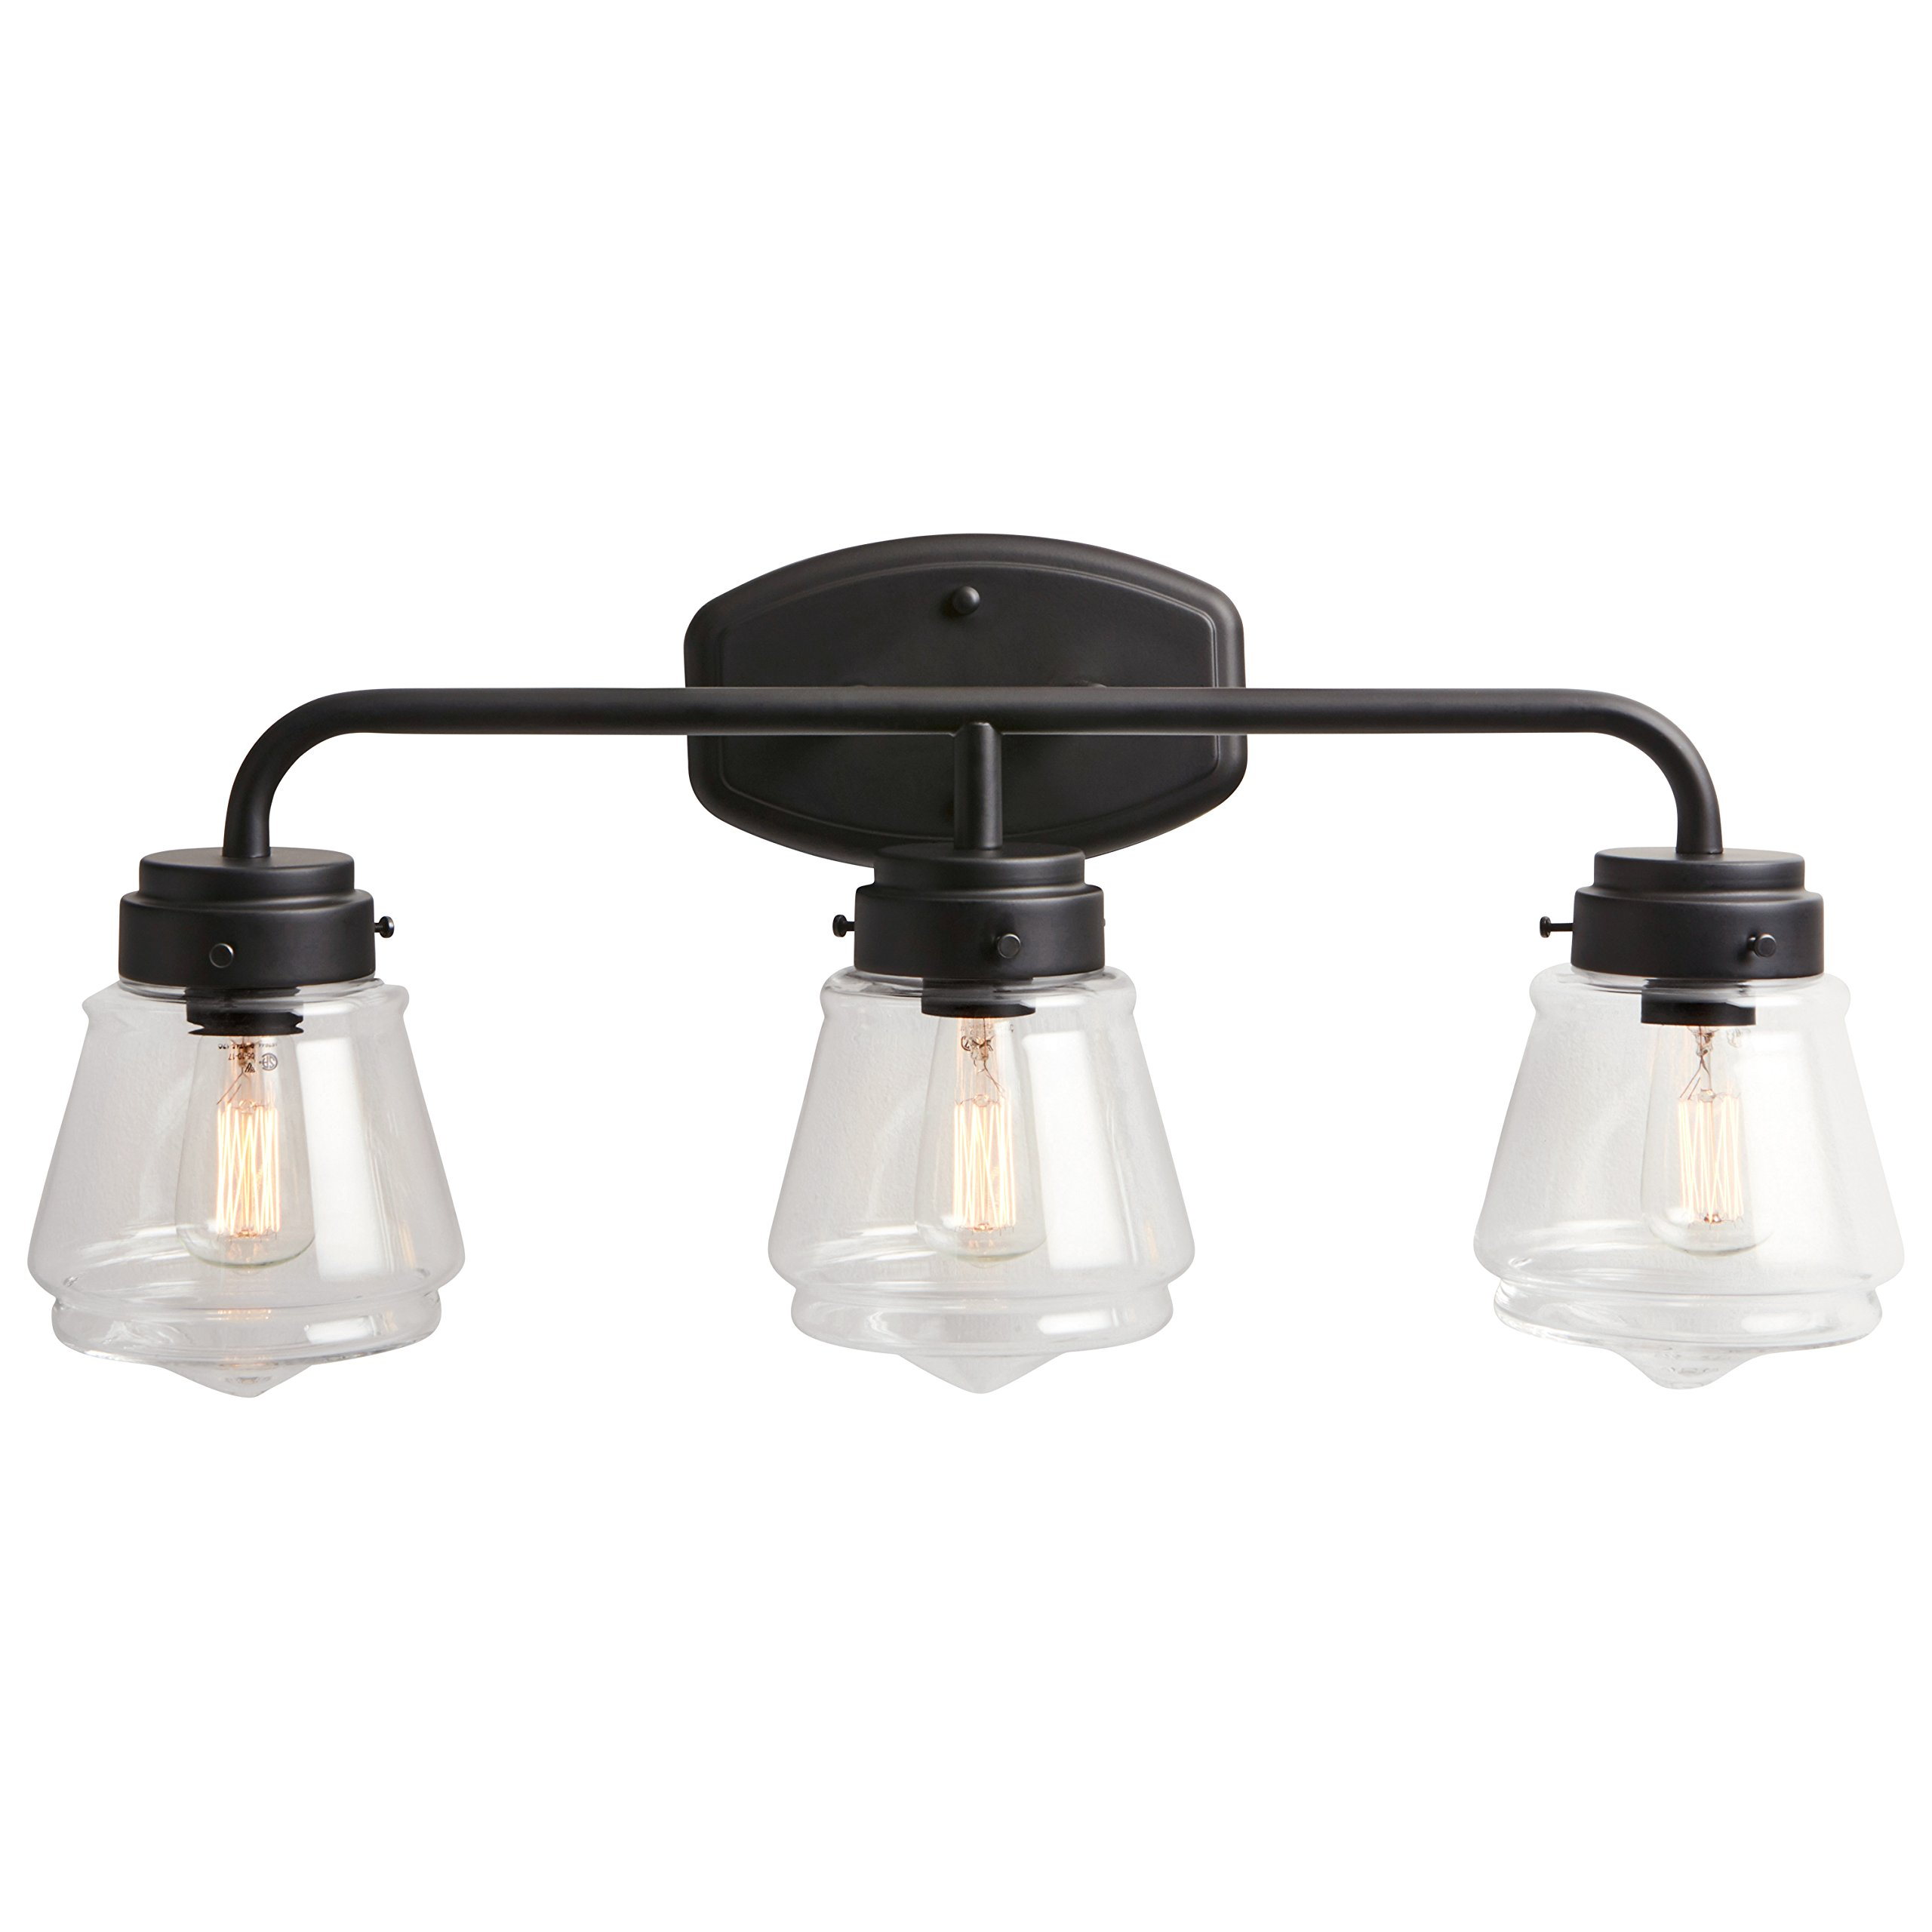 Stone & Beam Vintage 3-Light Vanity Fixture, 11.5''H, With Bulb, Matte Black with Glass Shade by Stone & Beam (Image #4)